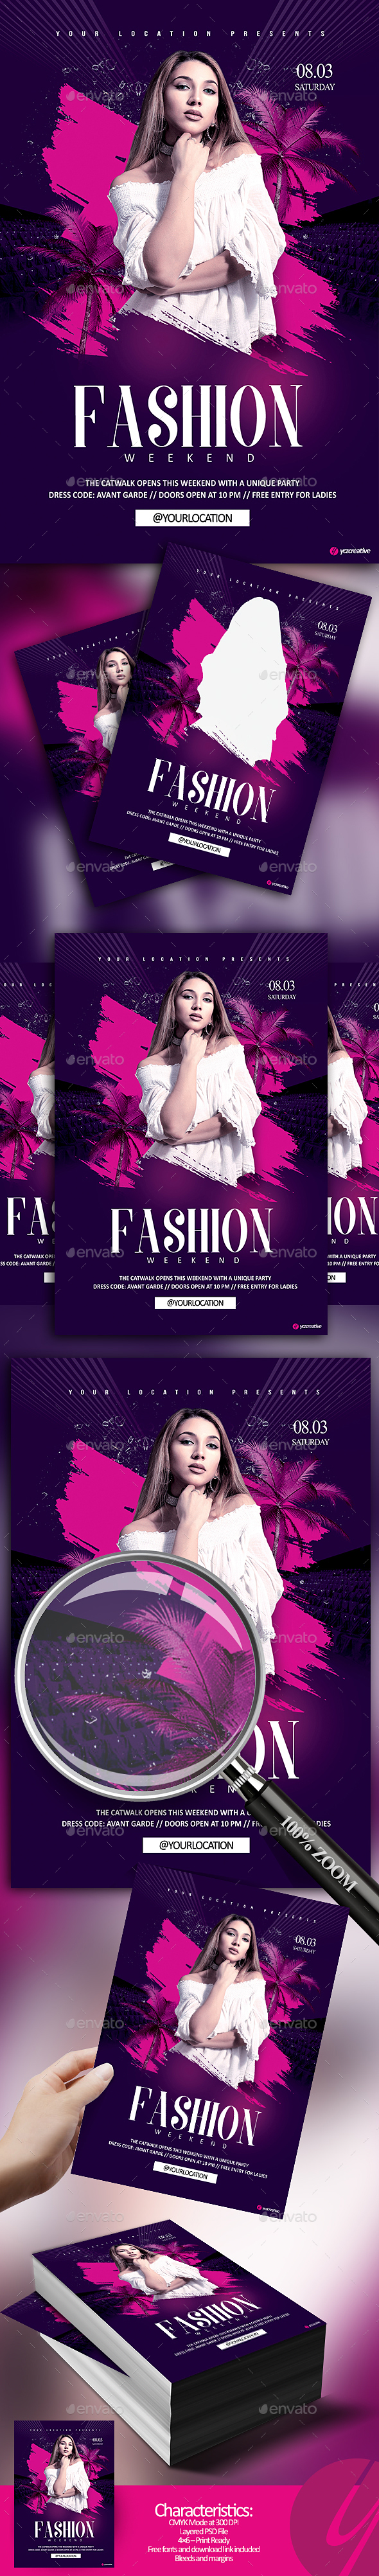 Fashion Weekend - Events Flyers